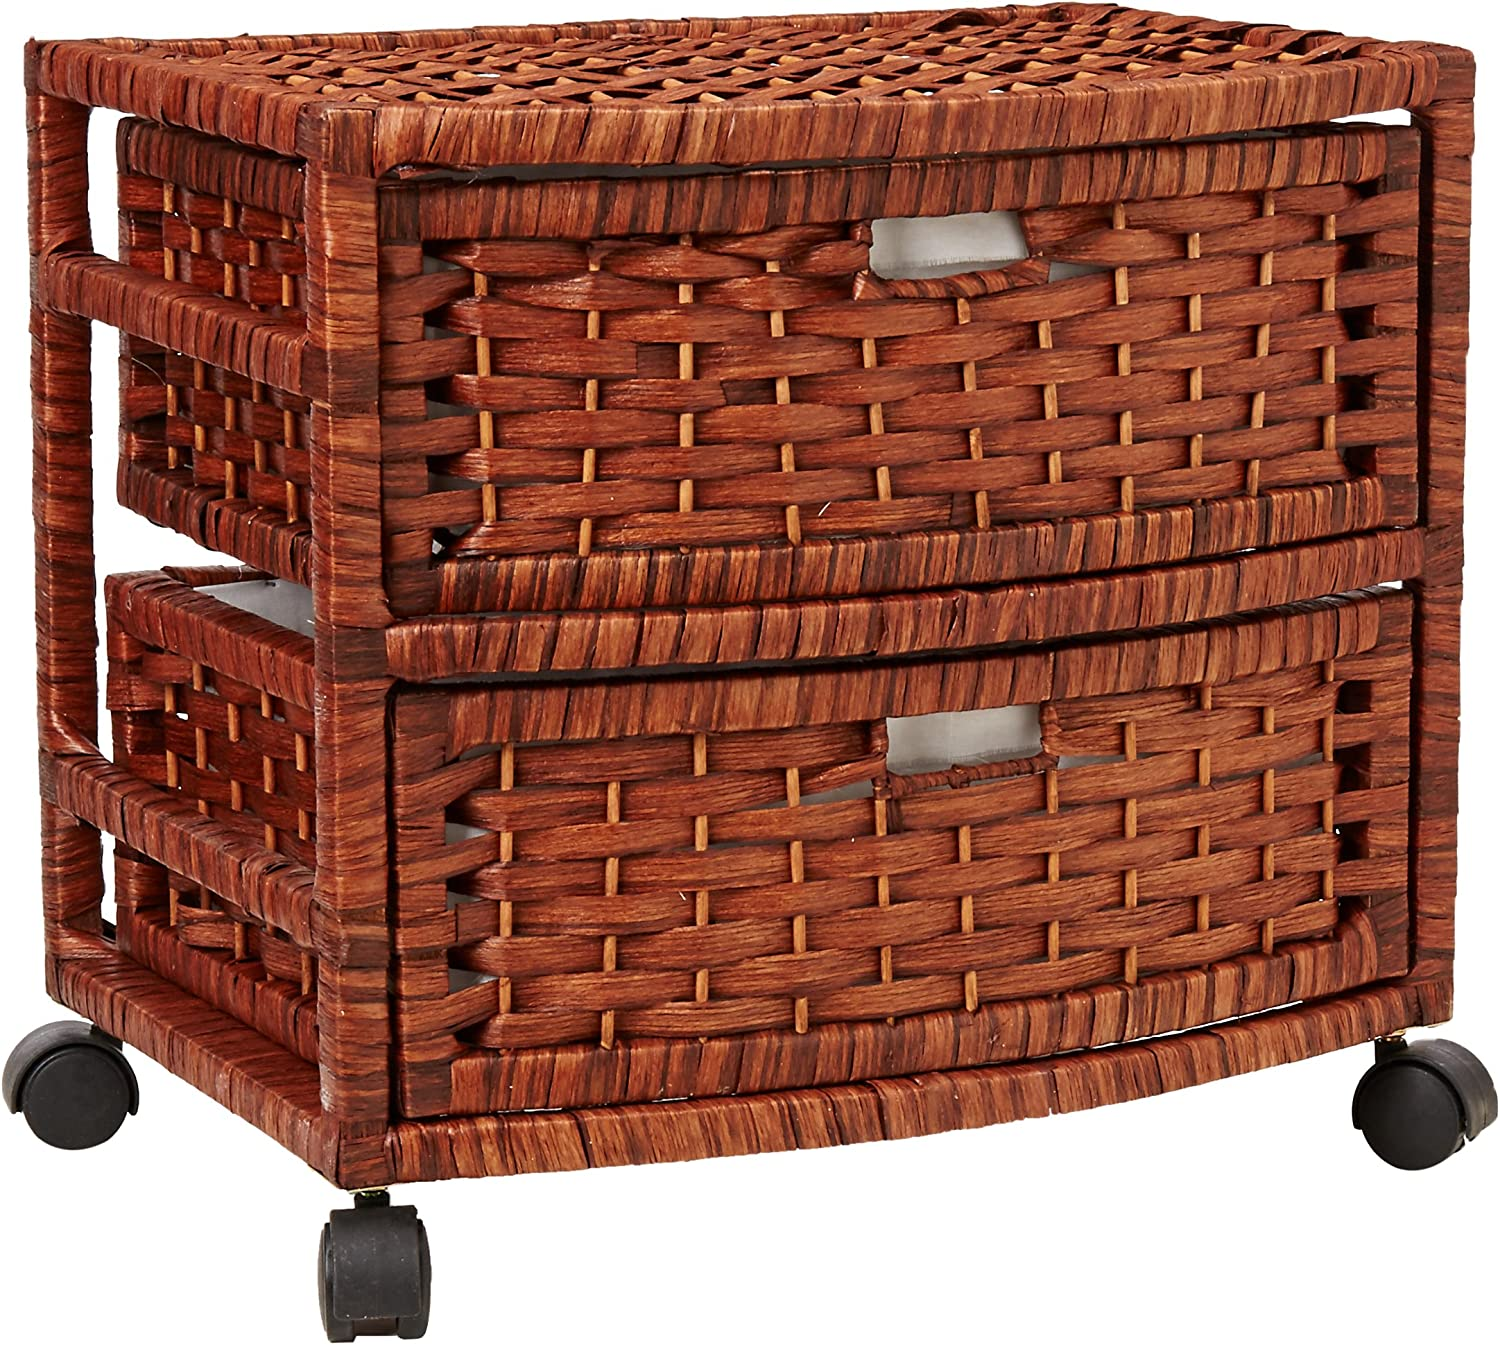 Oriental Furniture Simple Best Low Cost Nightstand End Tables, 16-Inch 2 Drawer Natural Fiber Wicker Style Storage Chest with Casters-Mahogany